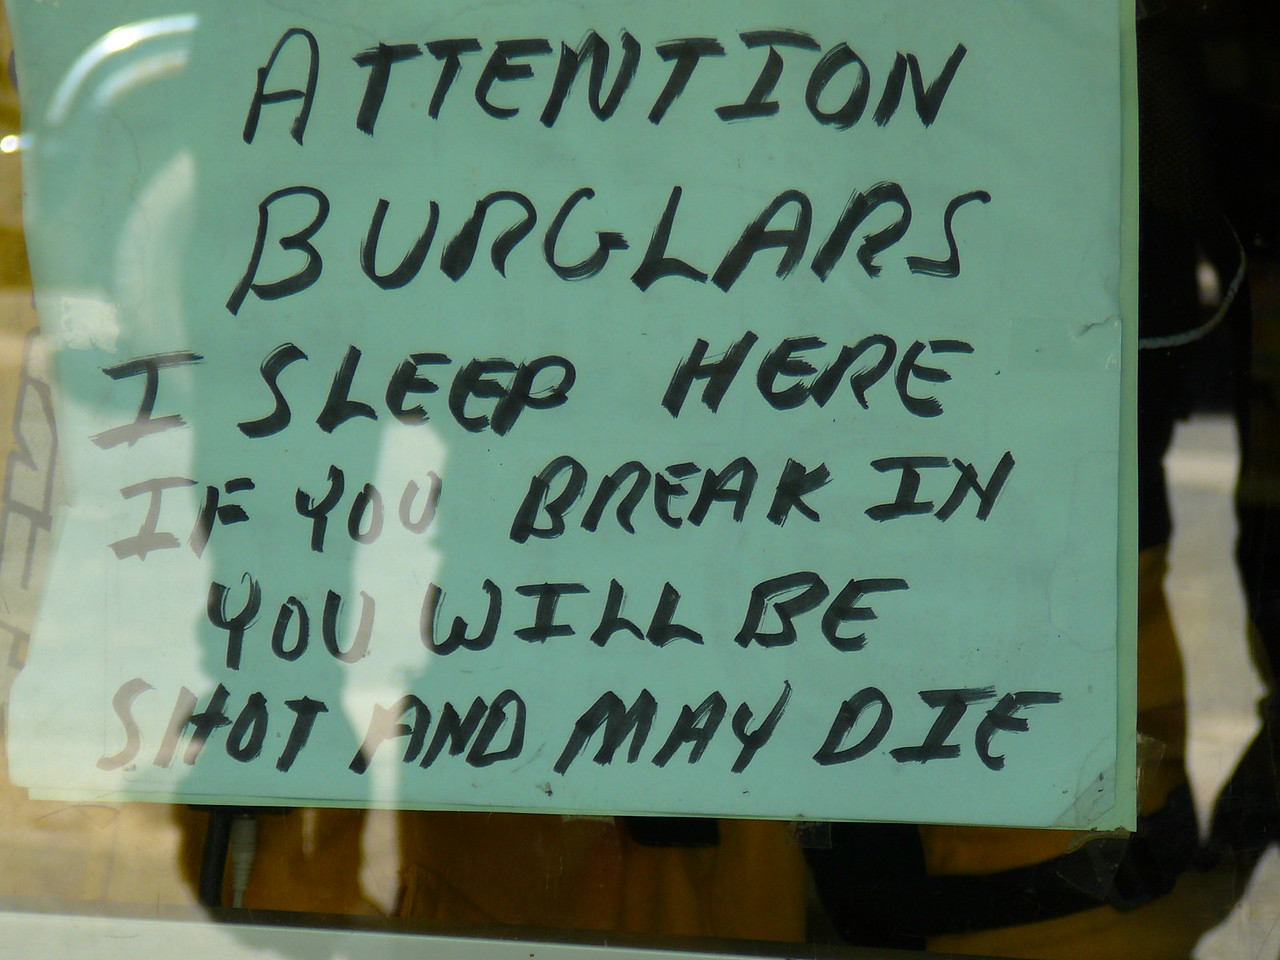 Interesting theft deterrent system in use here!